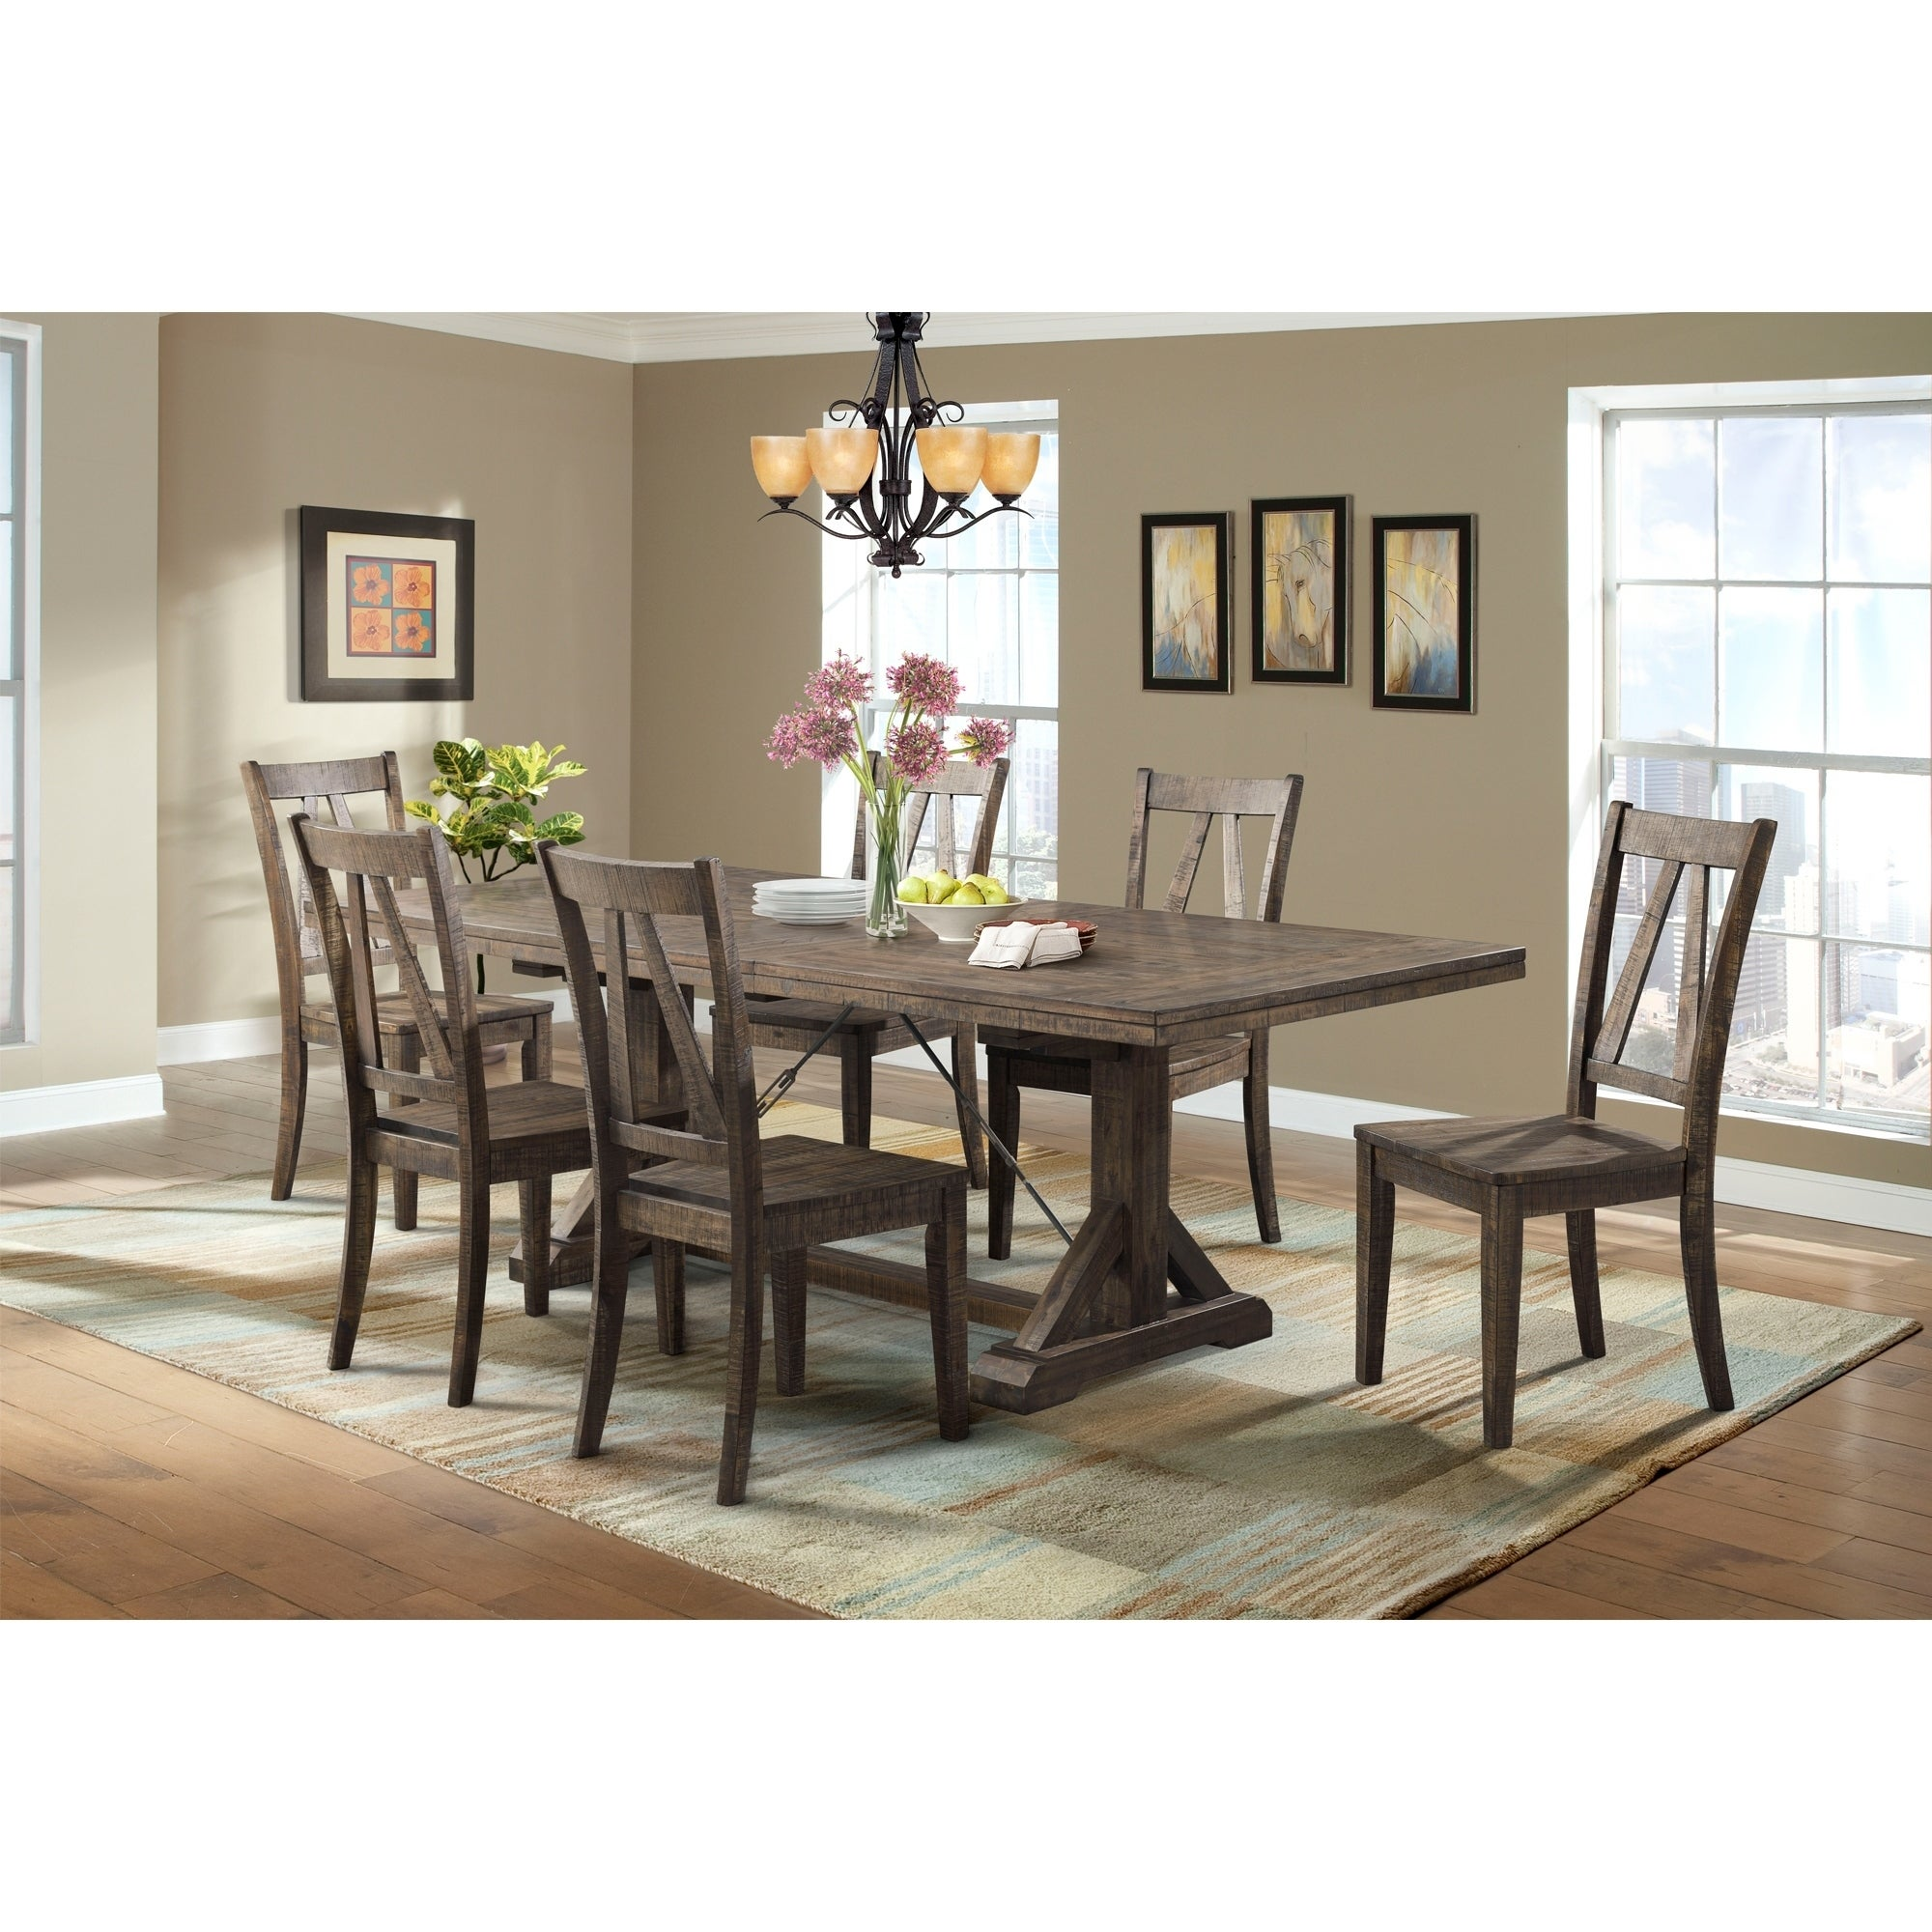 Picket house furnishings flynn 7pc dining set table 6 wooden dining chairs